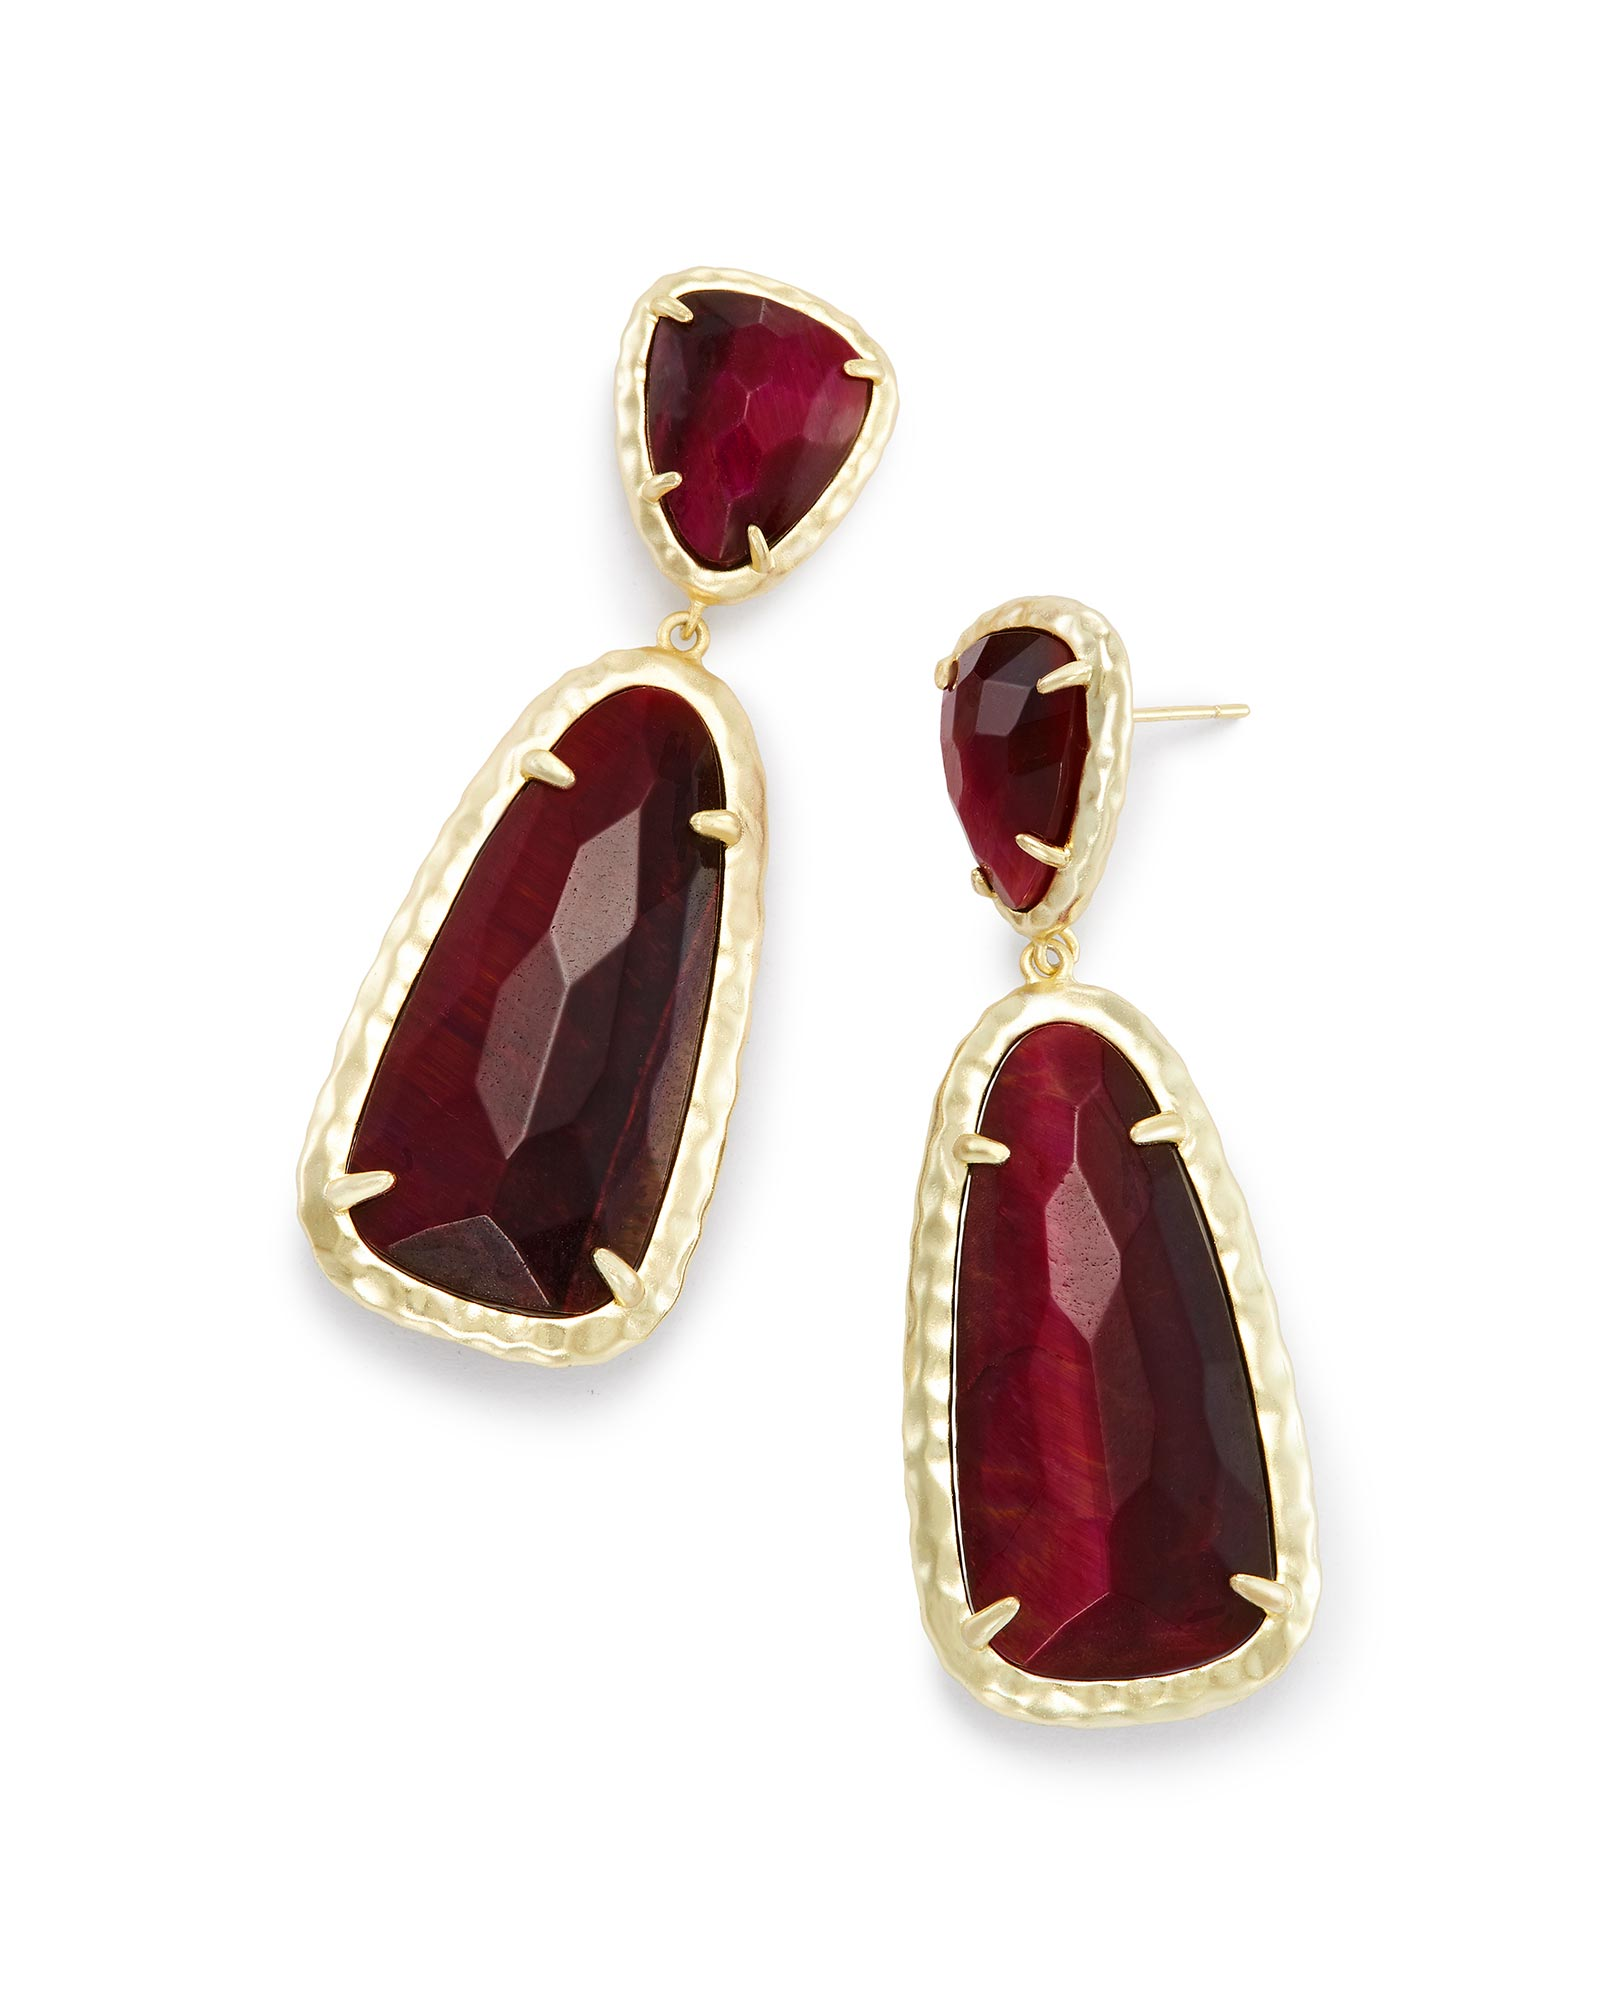 kendra-scott-daria-gold-statement-earrings-in-red-garnet_00_default_lg.jpg (1600×2000)